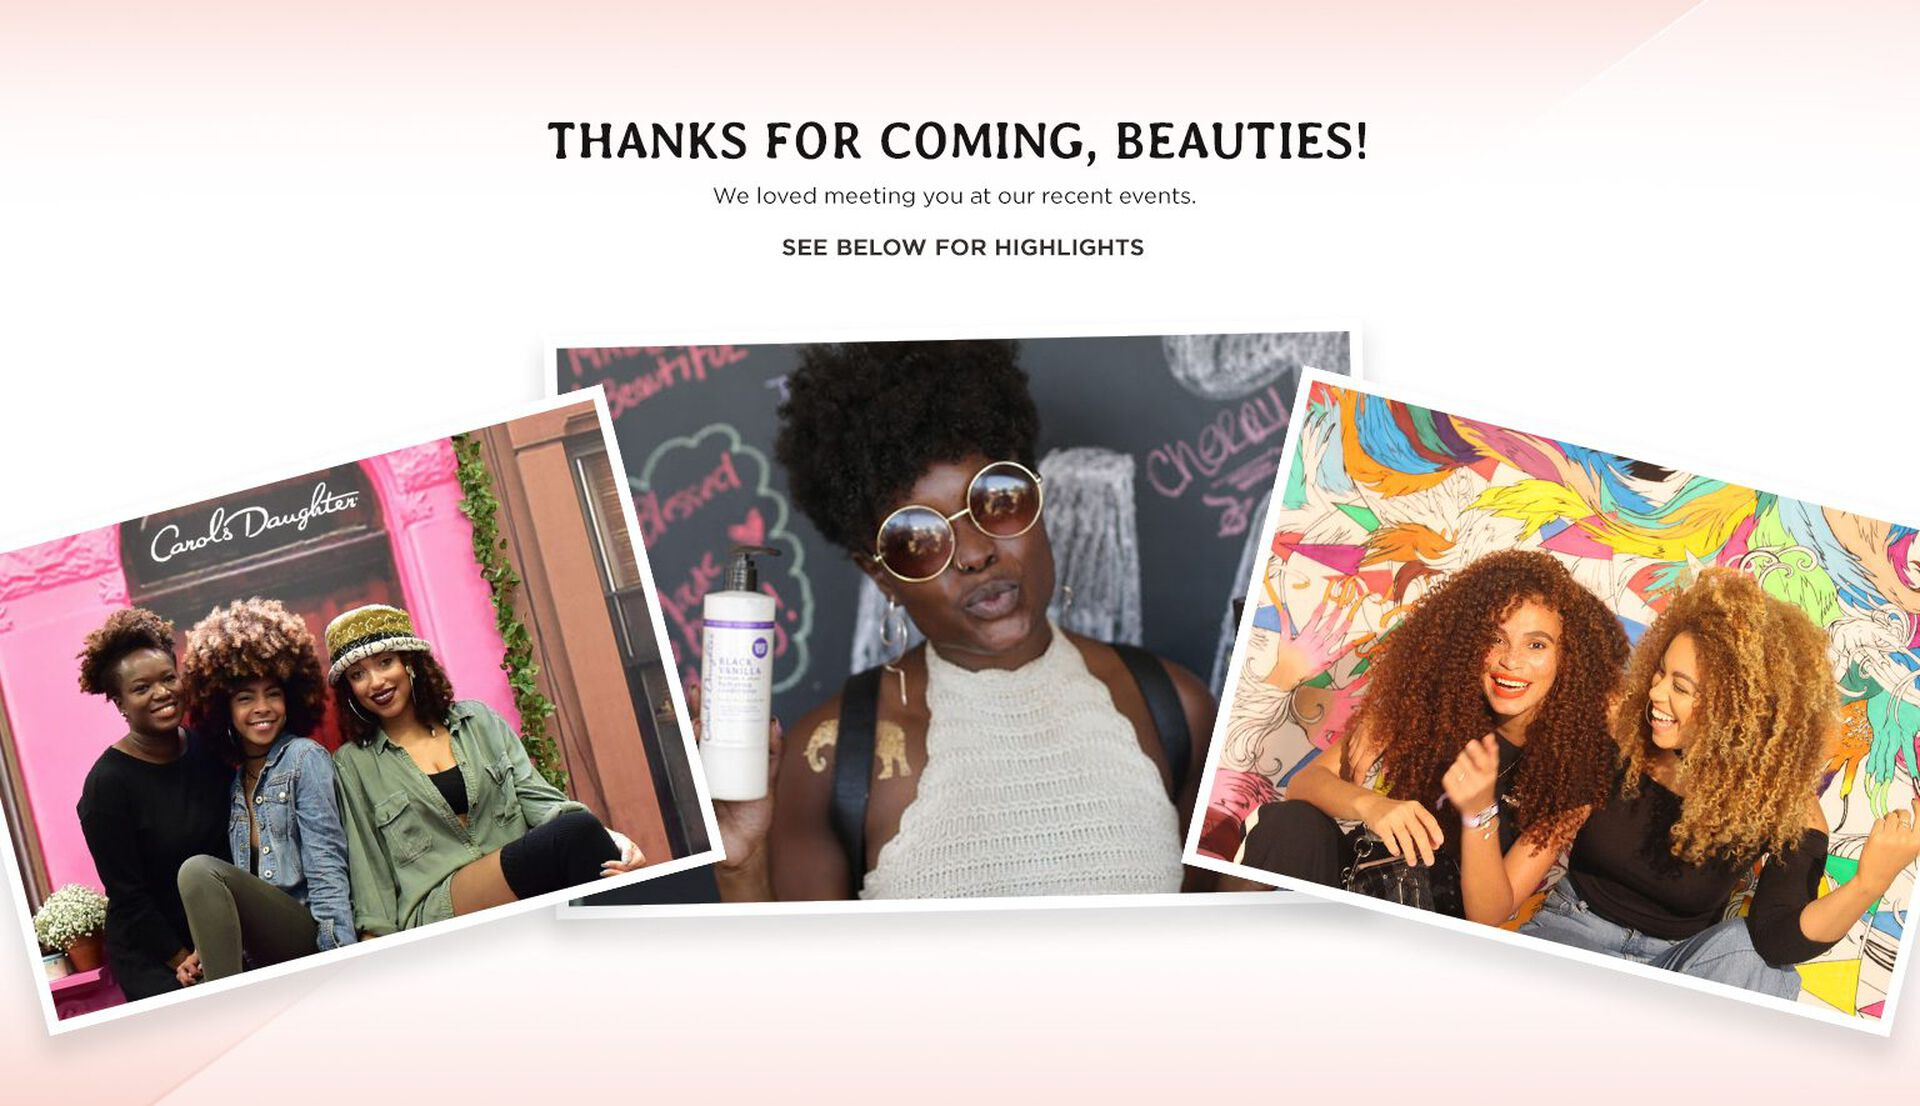 Thanks for coming, Beauties! We loved meeting you at our  recent events. See below for highlights.